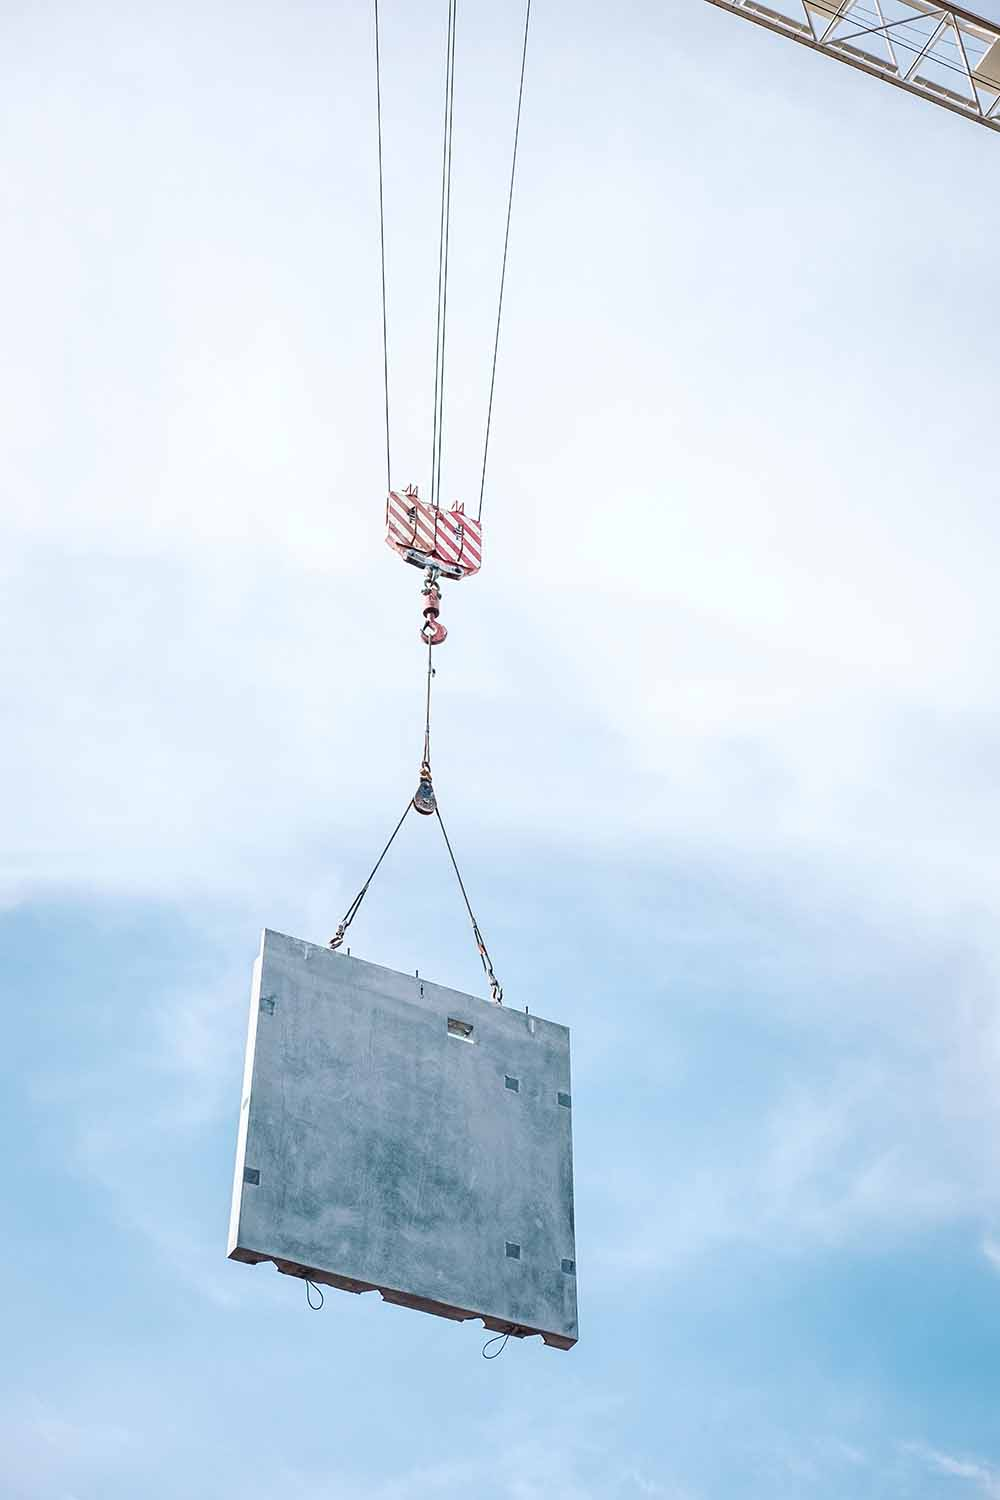 A precast concrete wall is hoisted up into the air by a crane.